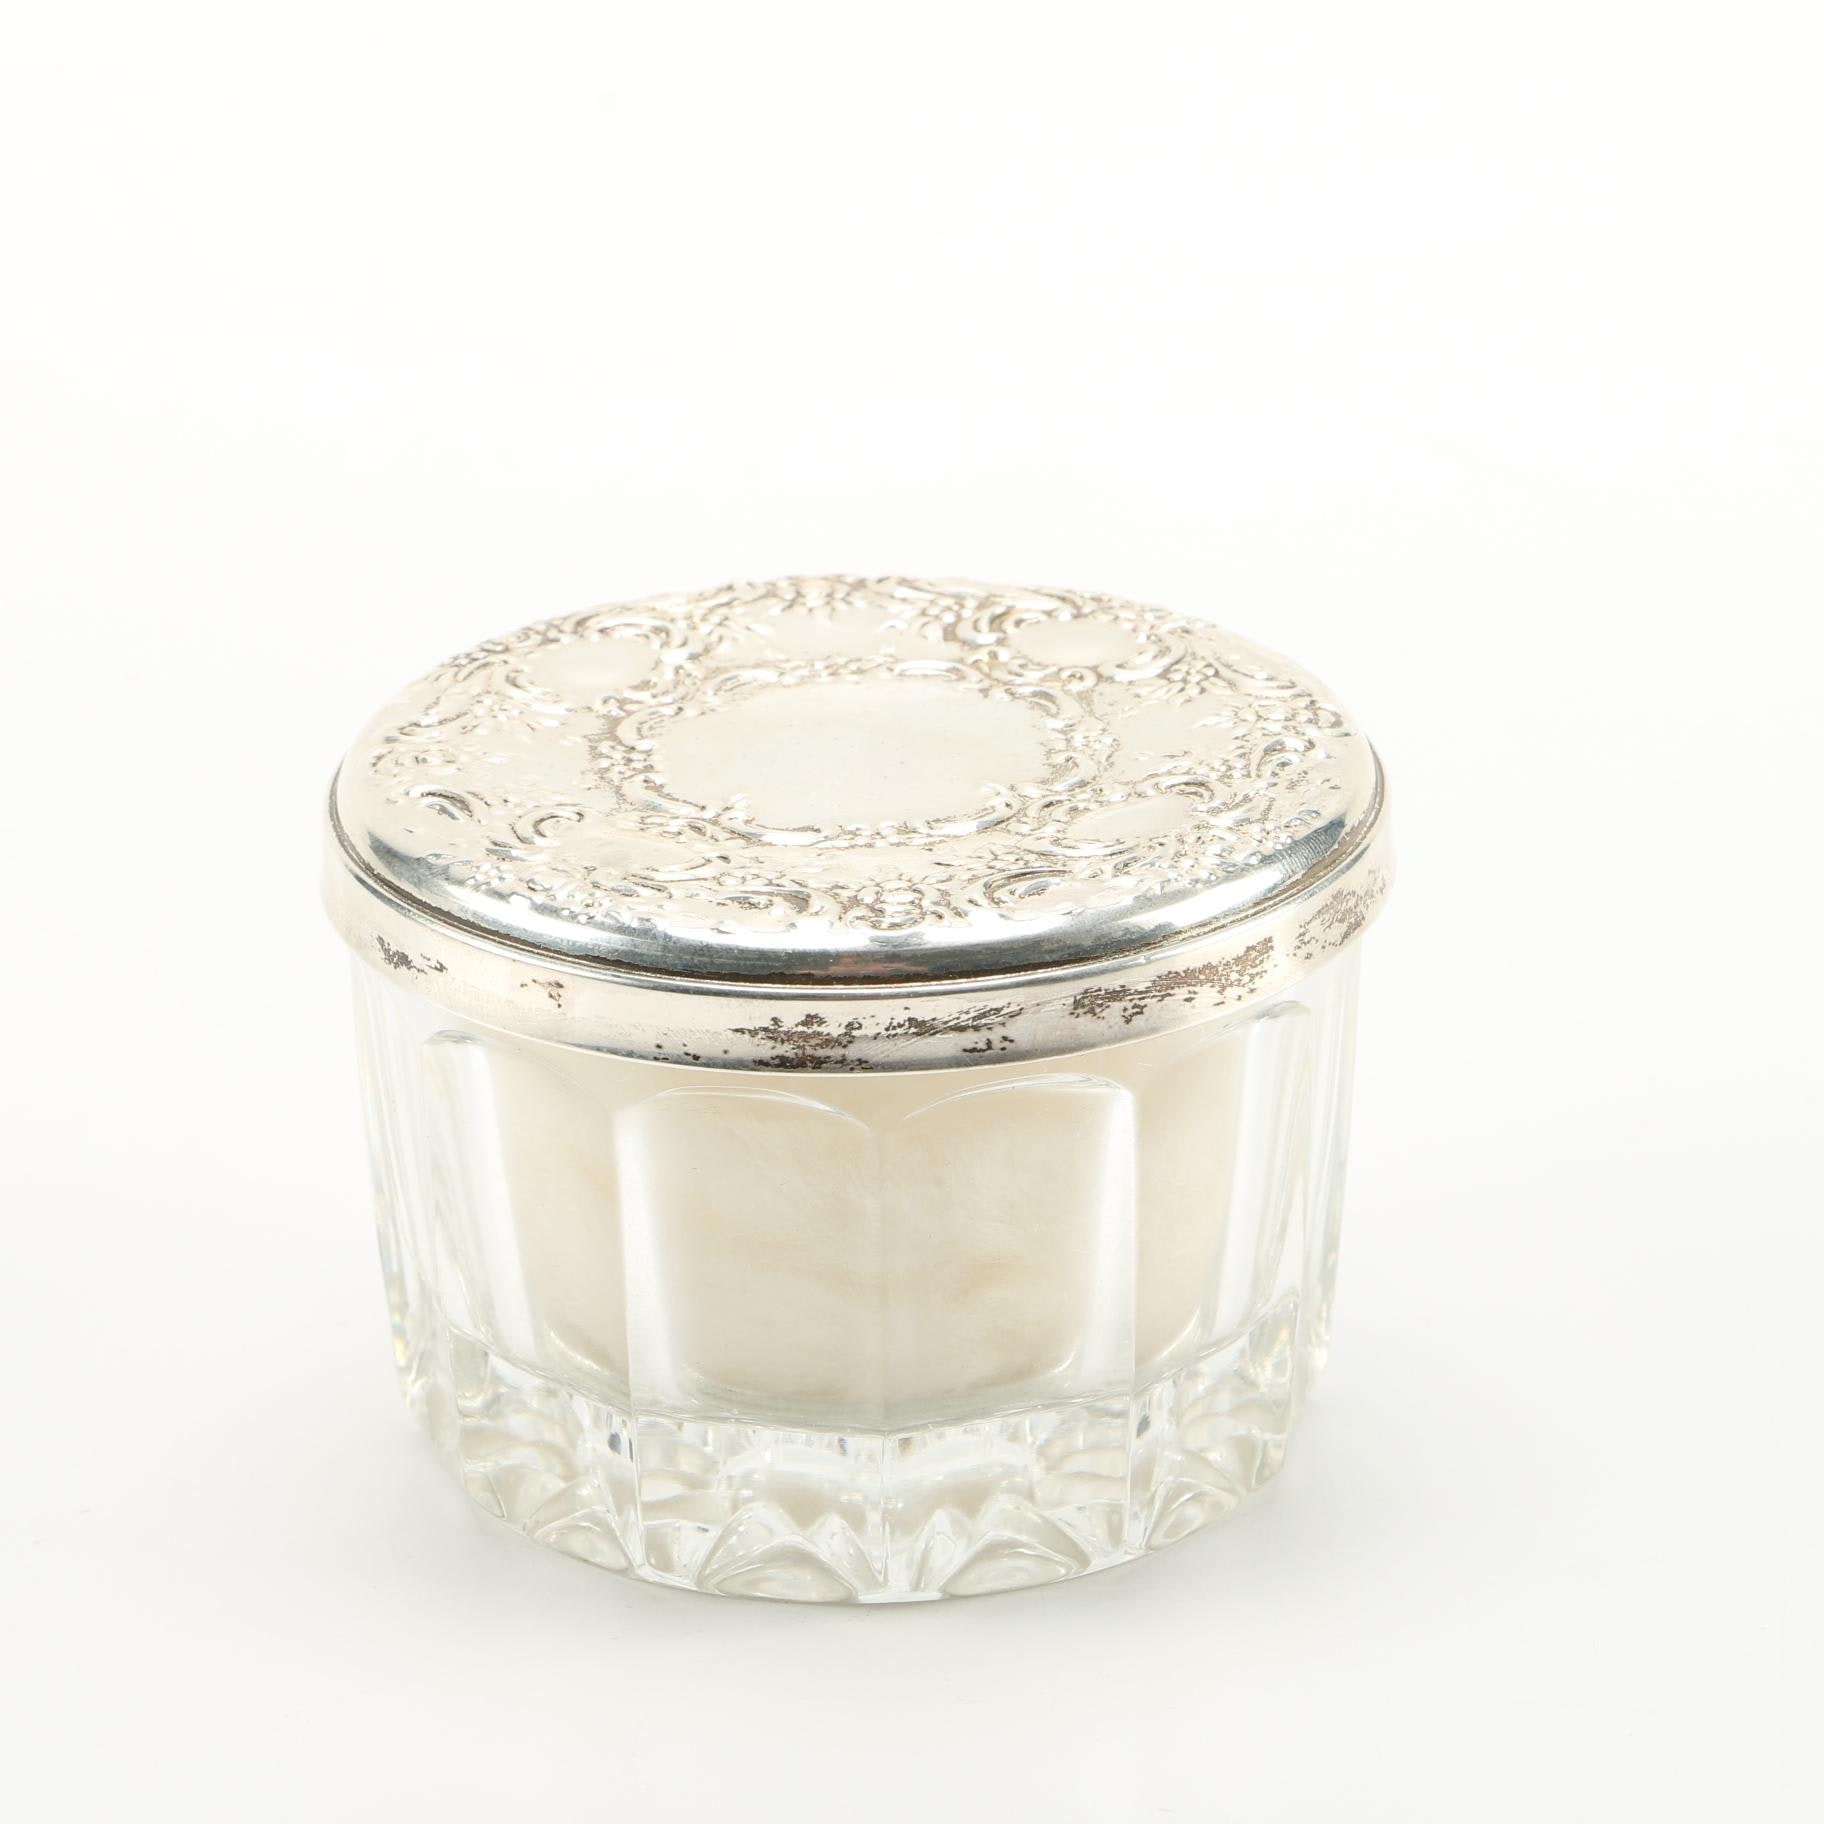 Towle Sterling Silver and Glass Powder Jar with Screen and Puff